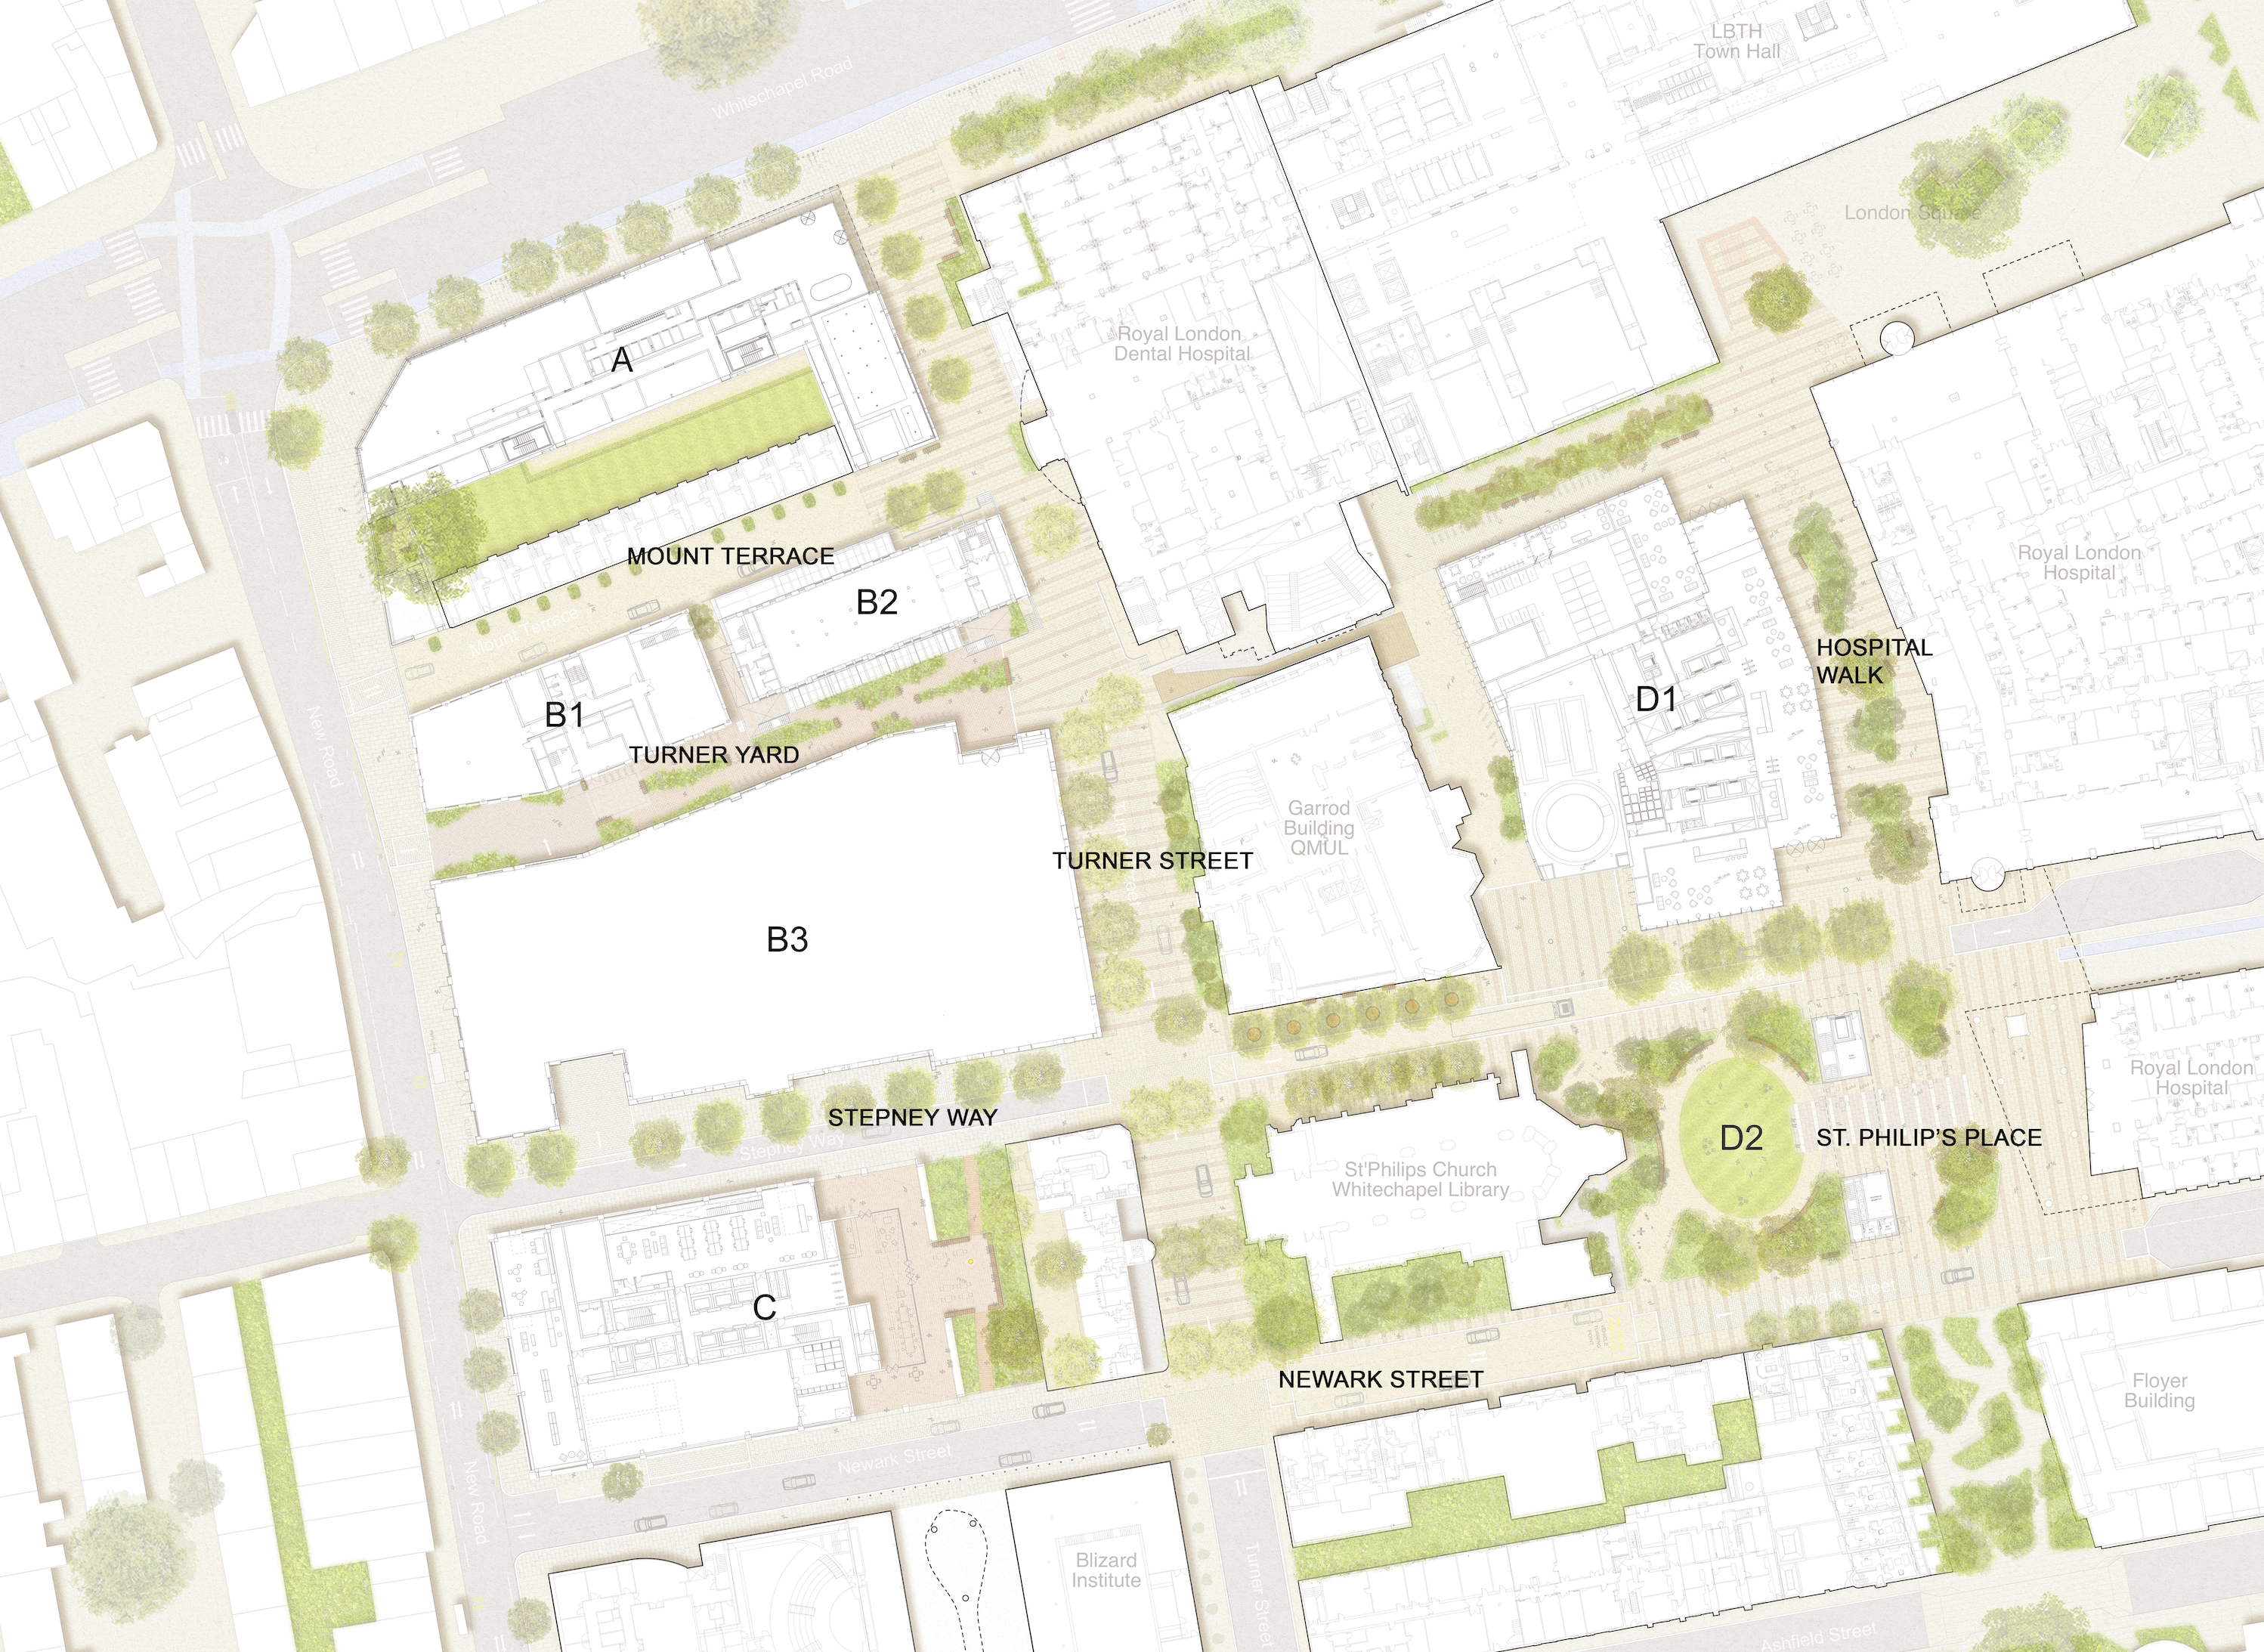 The five sites are highlighted above in blue, with other key buildings nearby outlined.